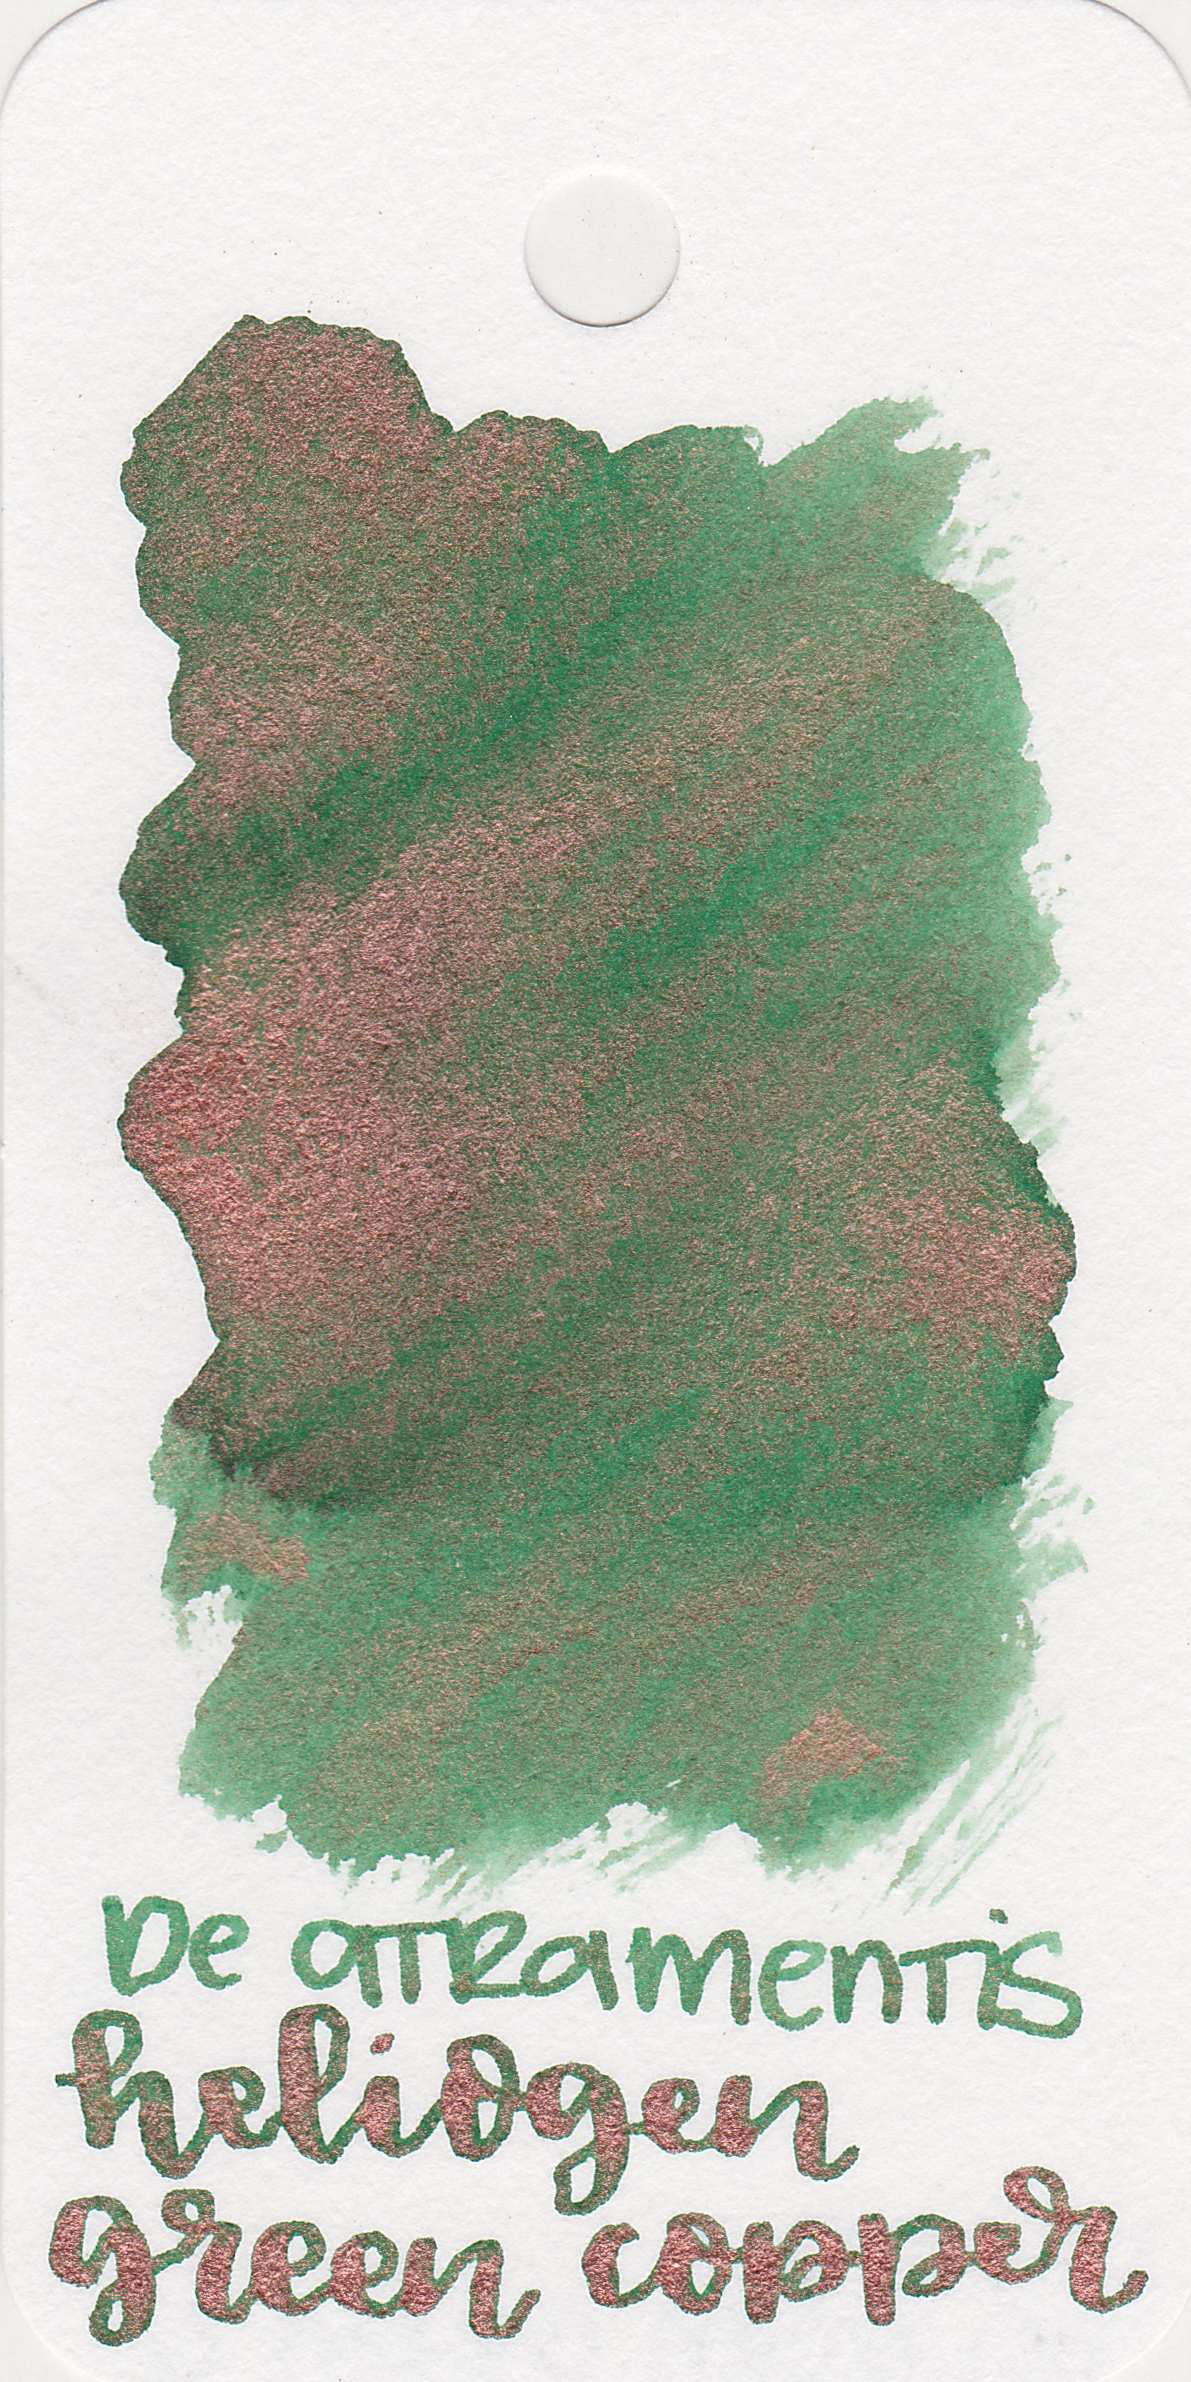 da-heliogen-green-copper-1.jpg